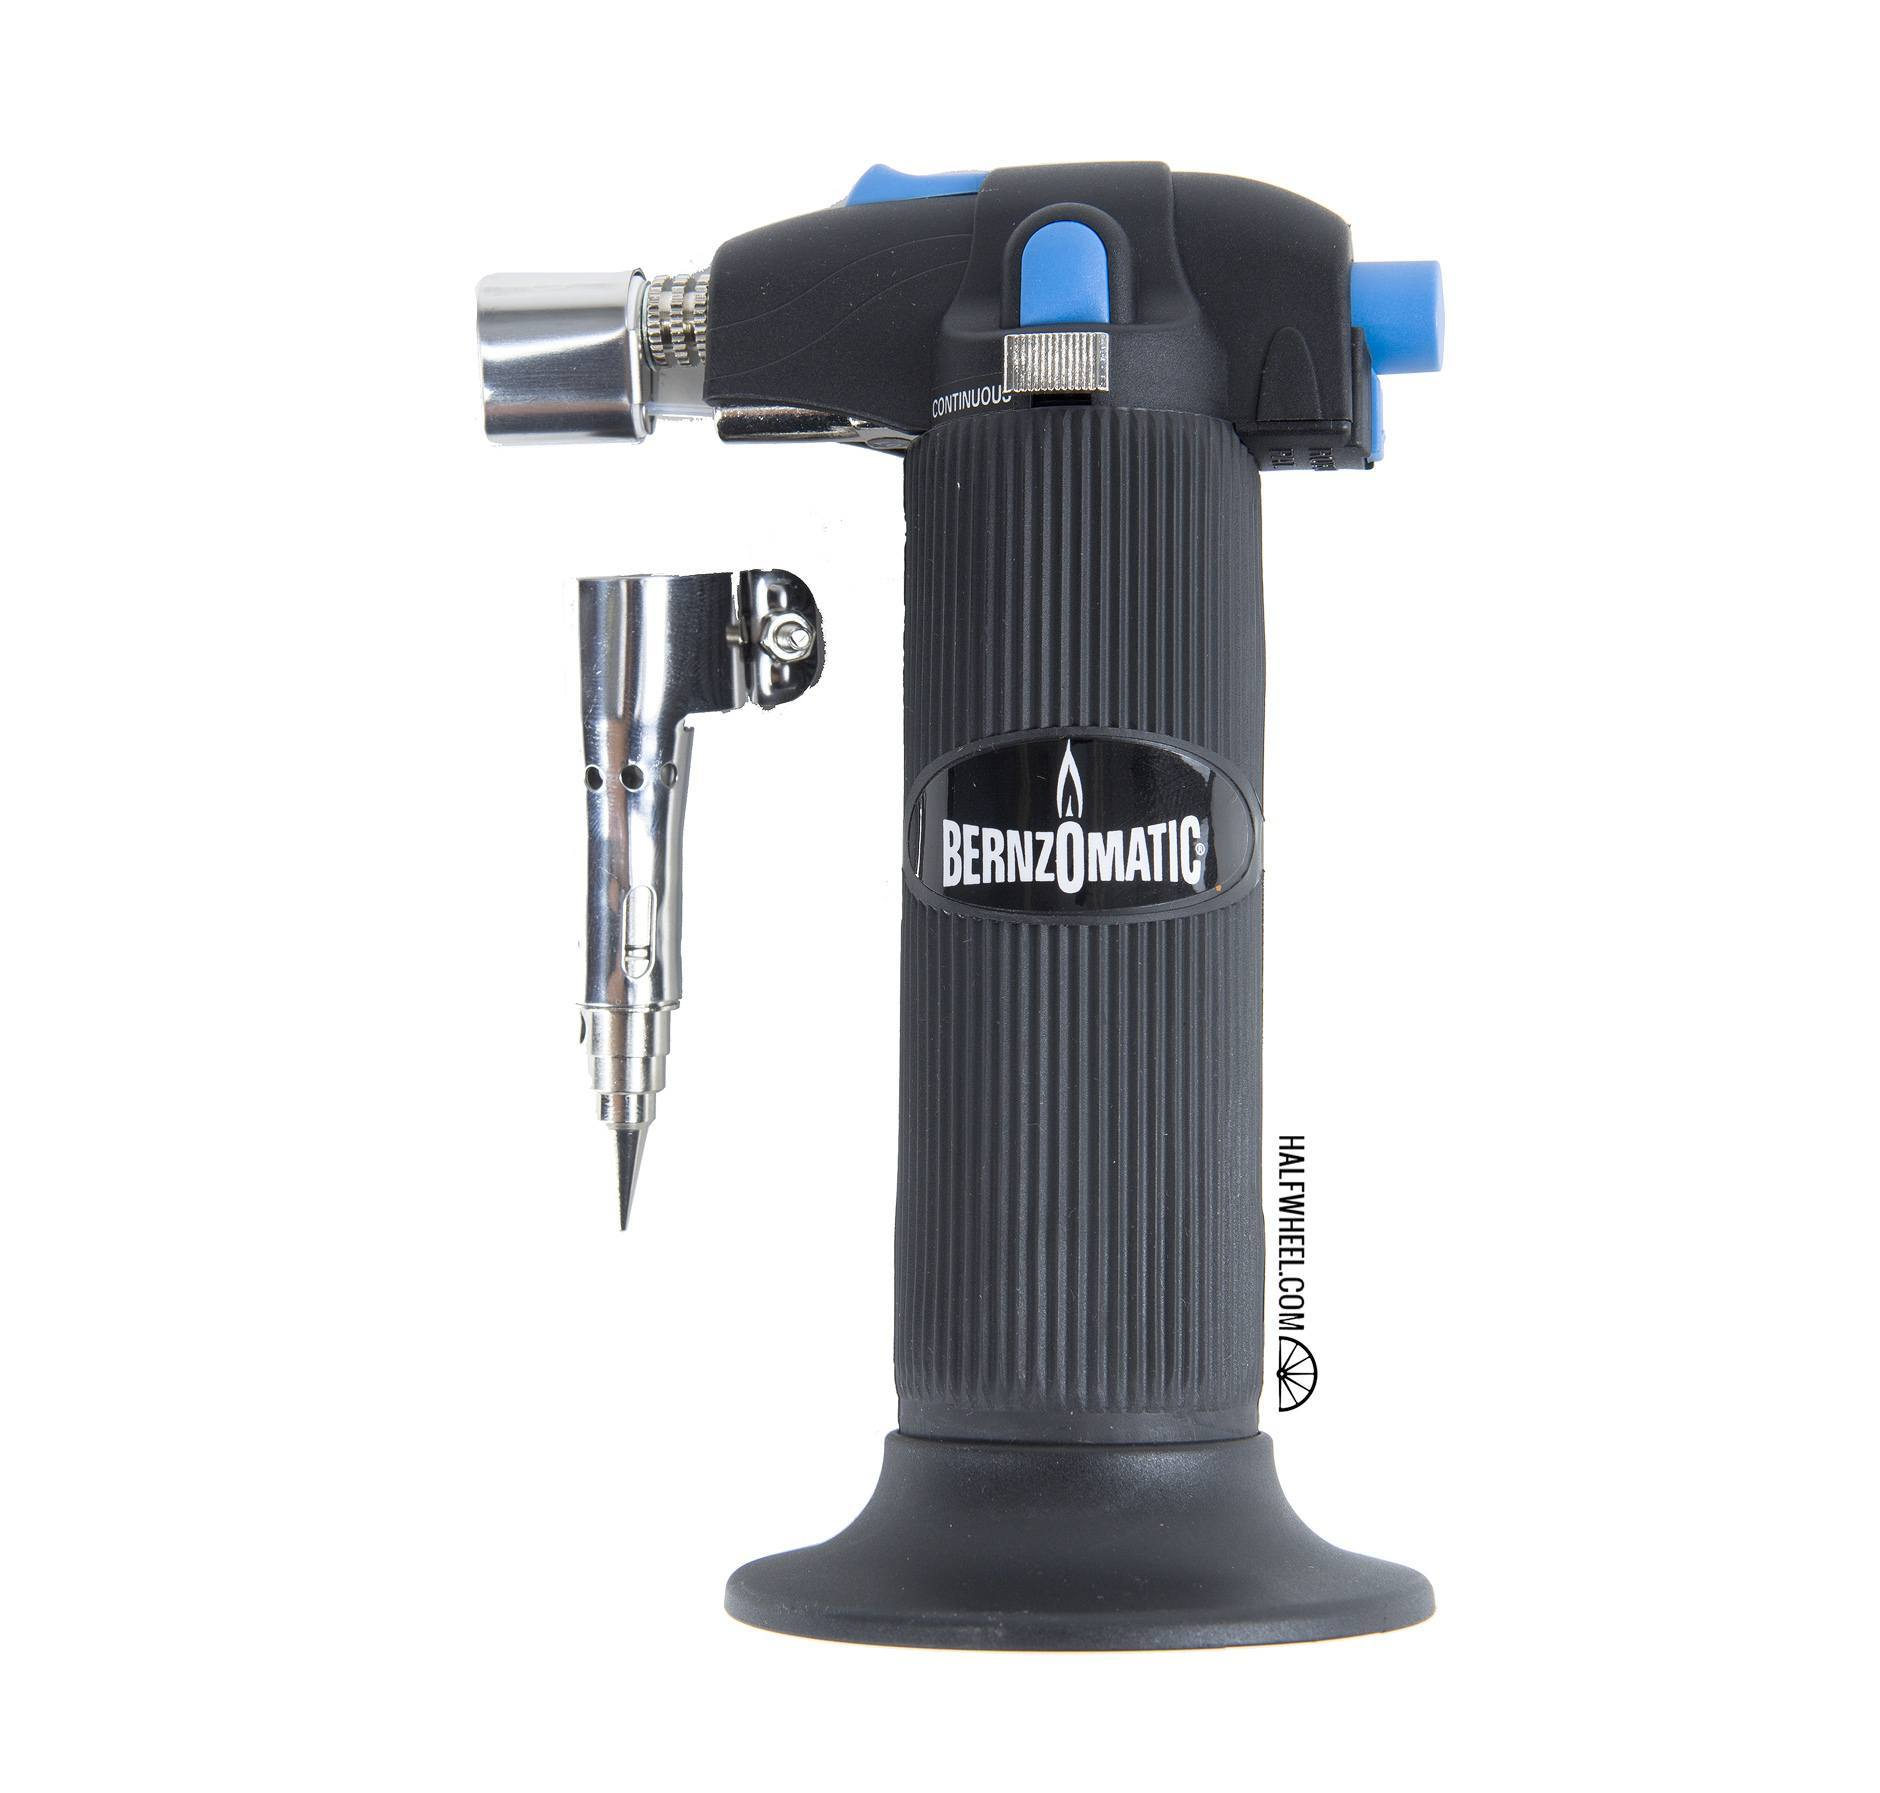 BernzOmatic ST2200 Micro Torch Included